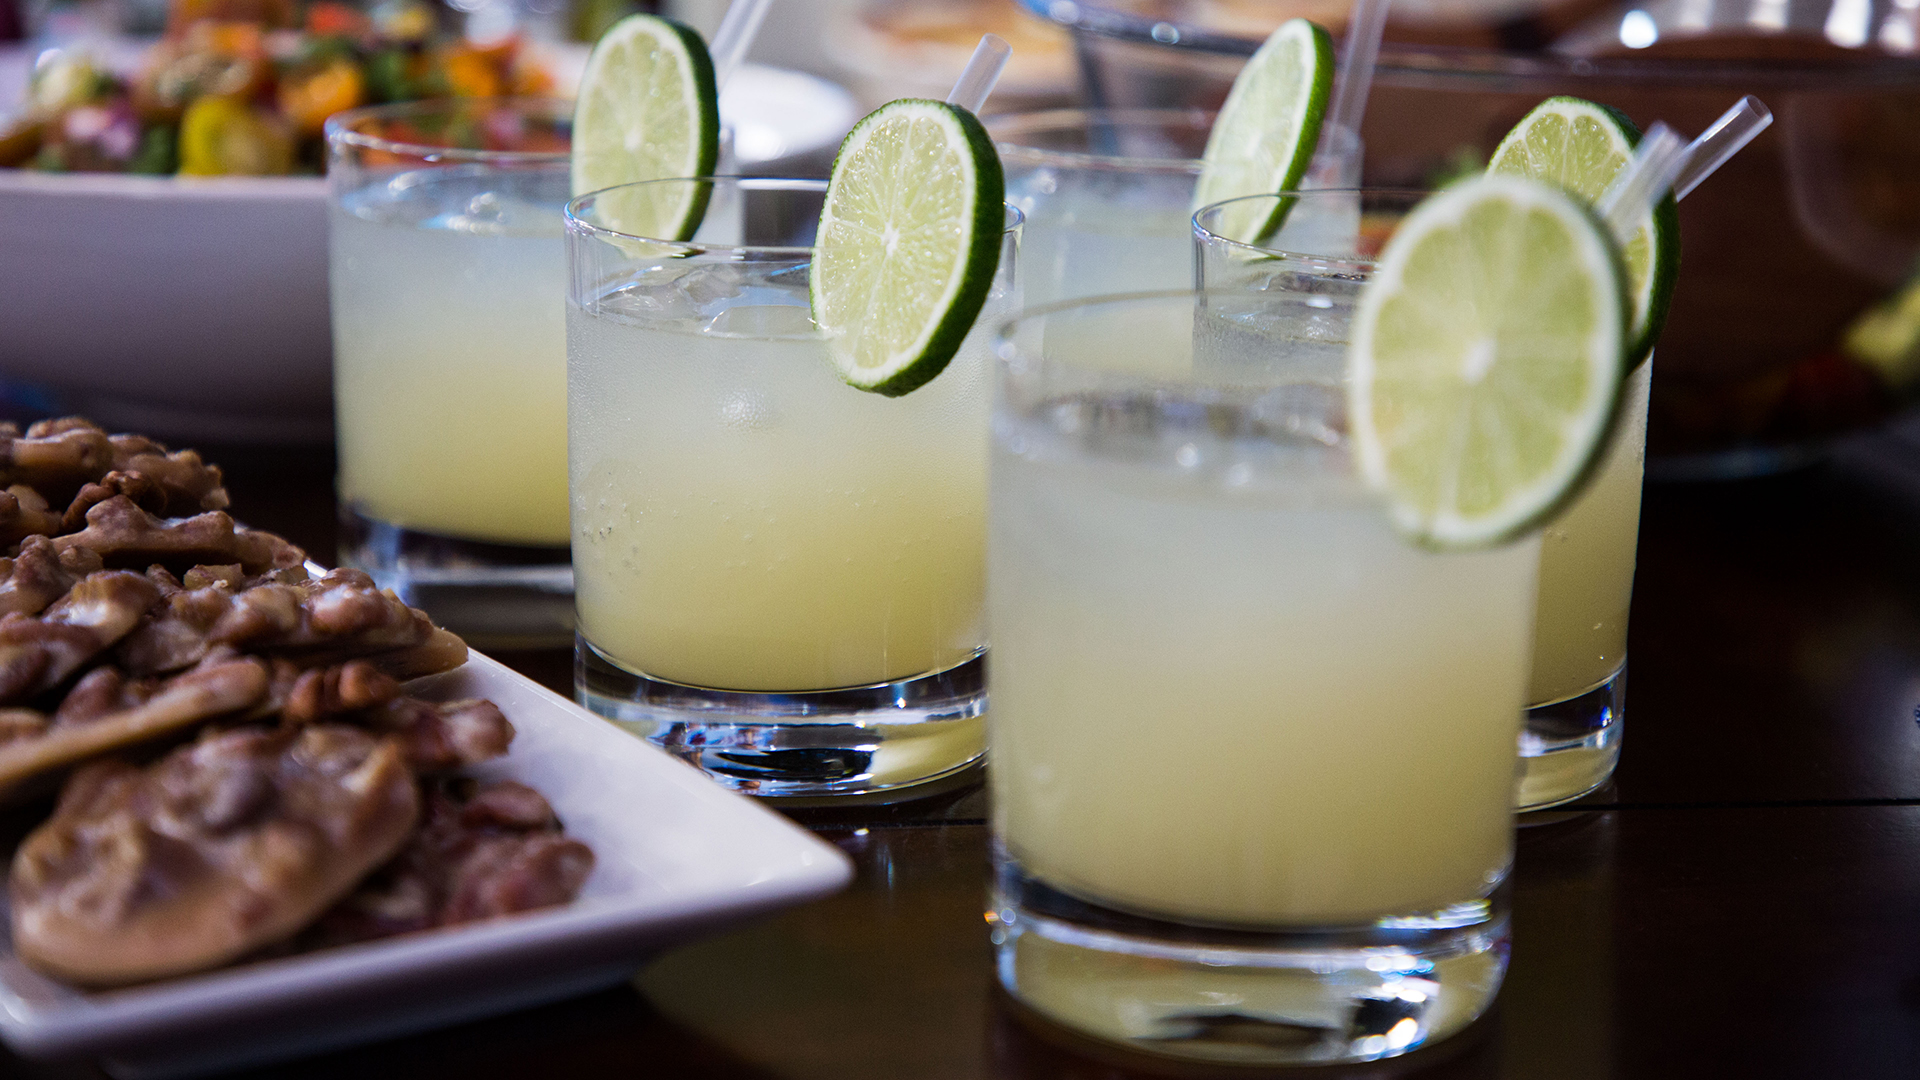 How to make a good margarita without mix